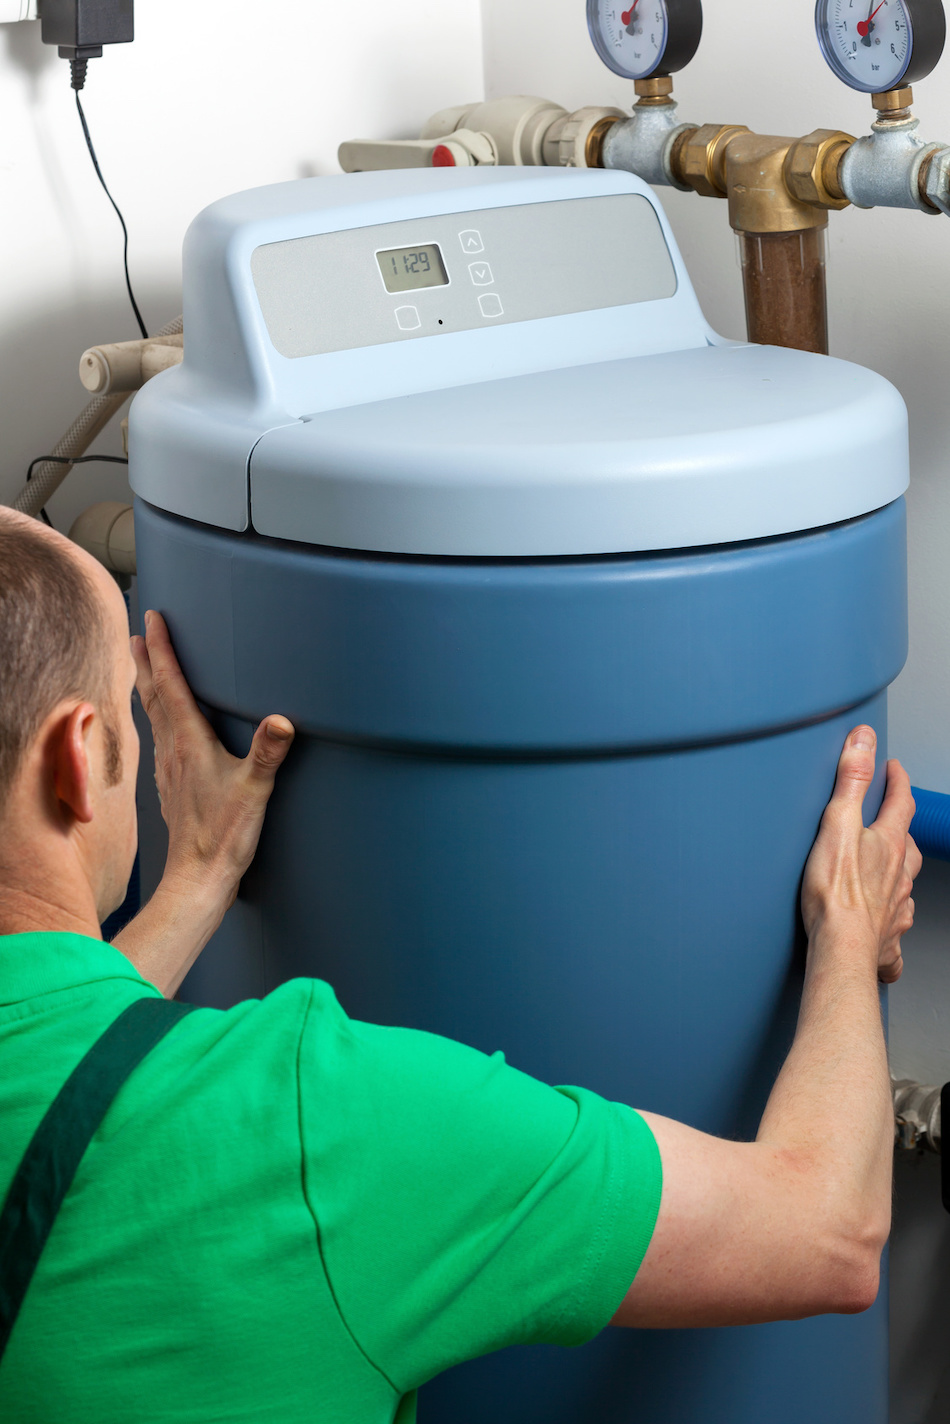 Installing a Water Softener at Home